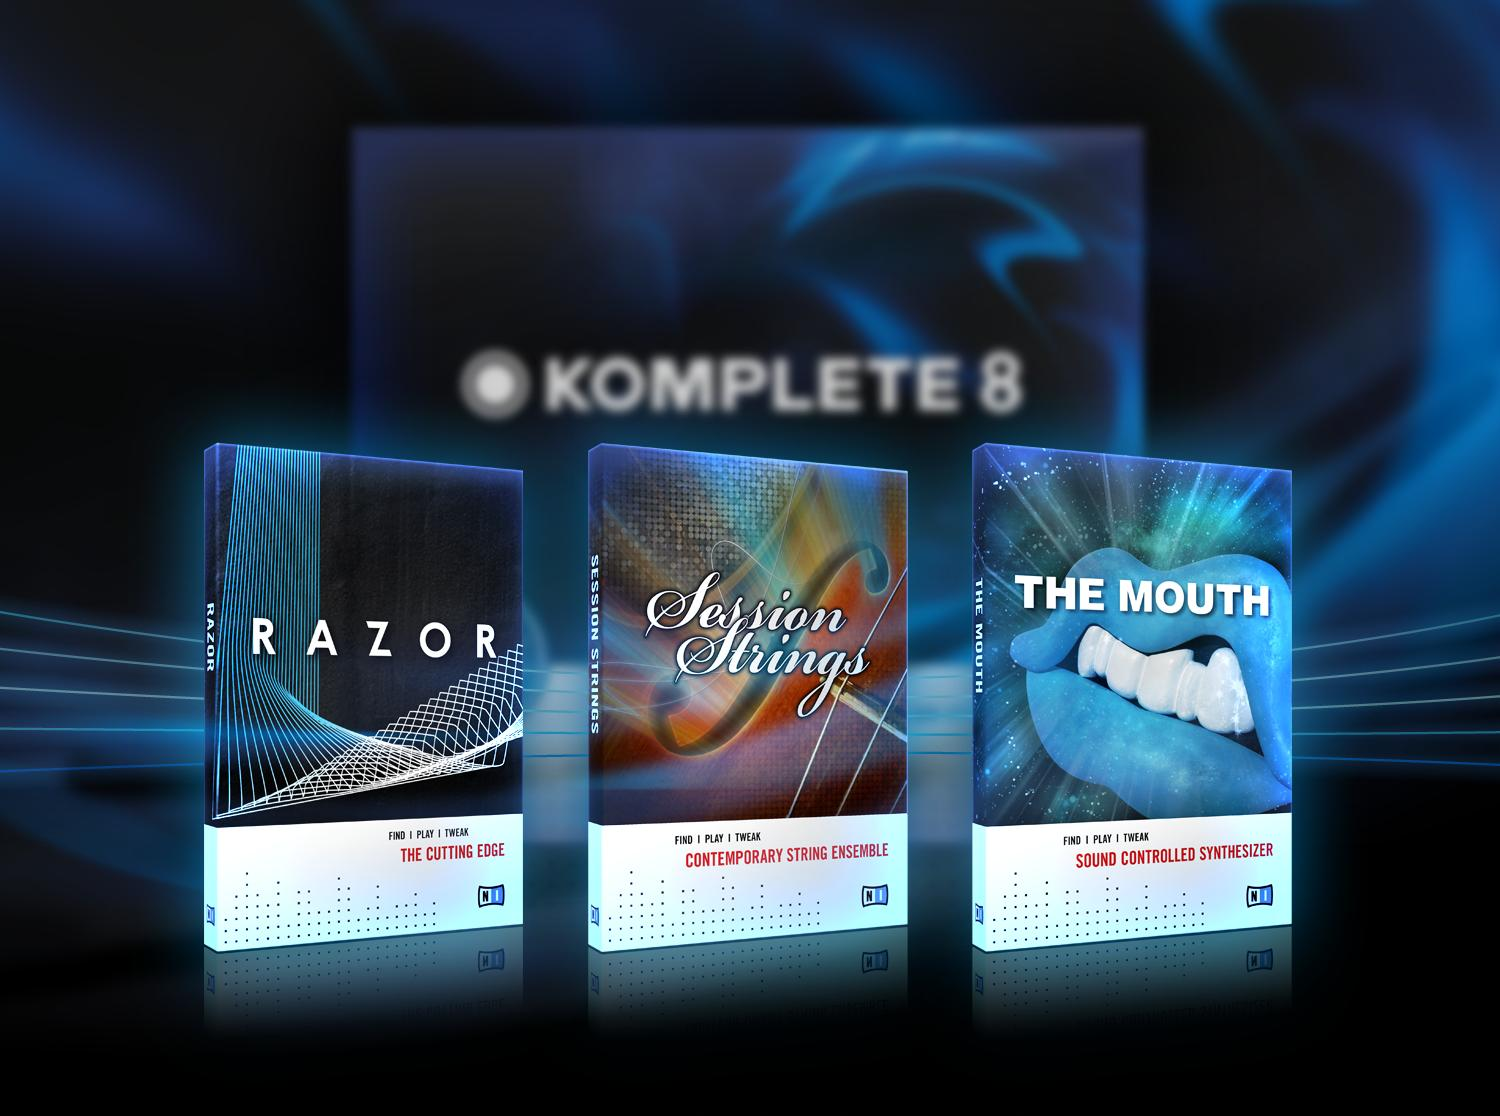 Komplete 8 Summer Offer @ Scan